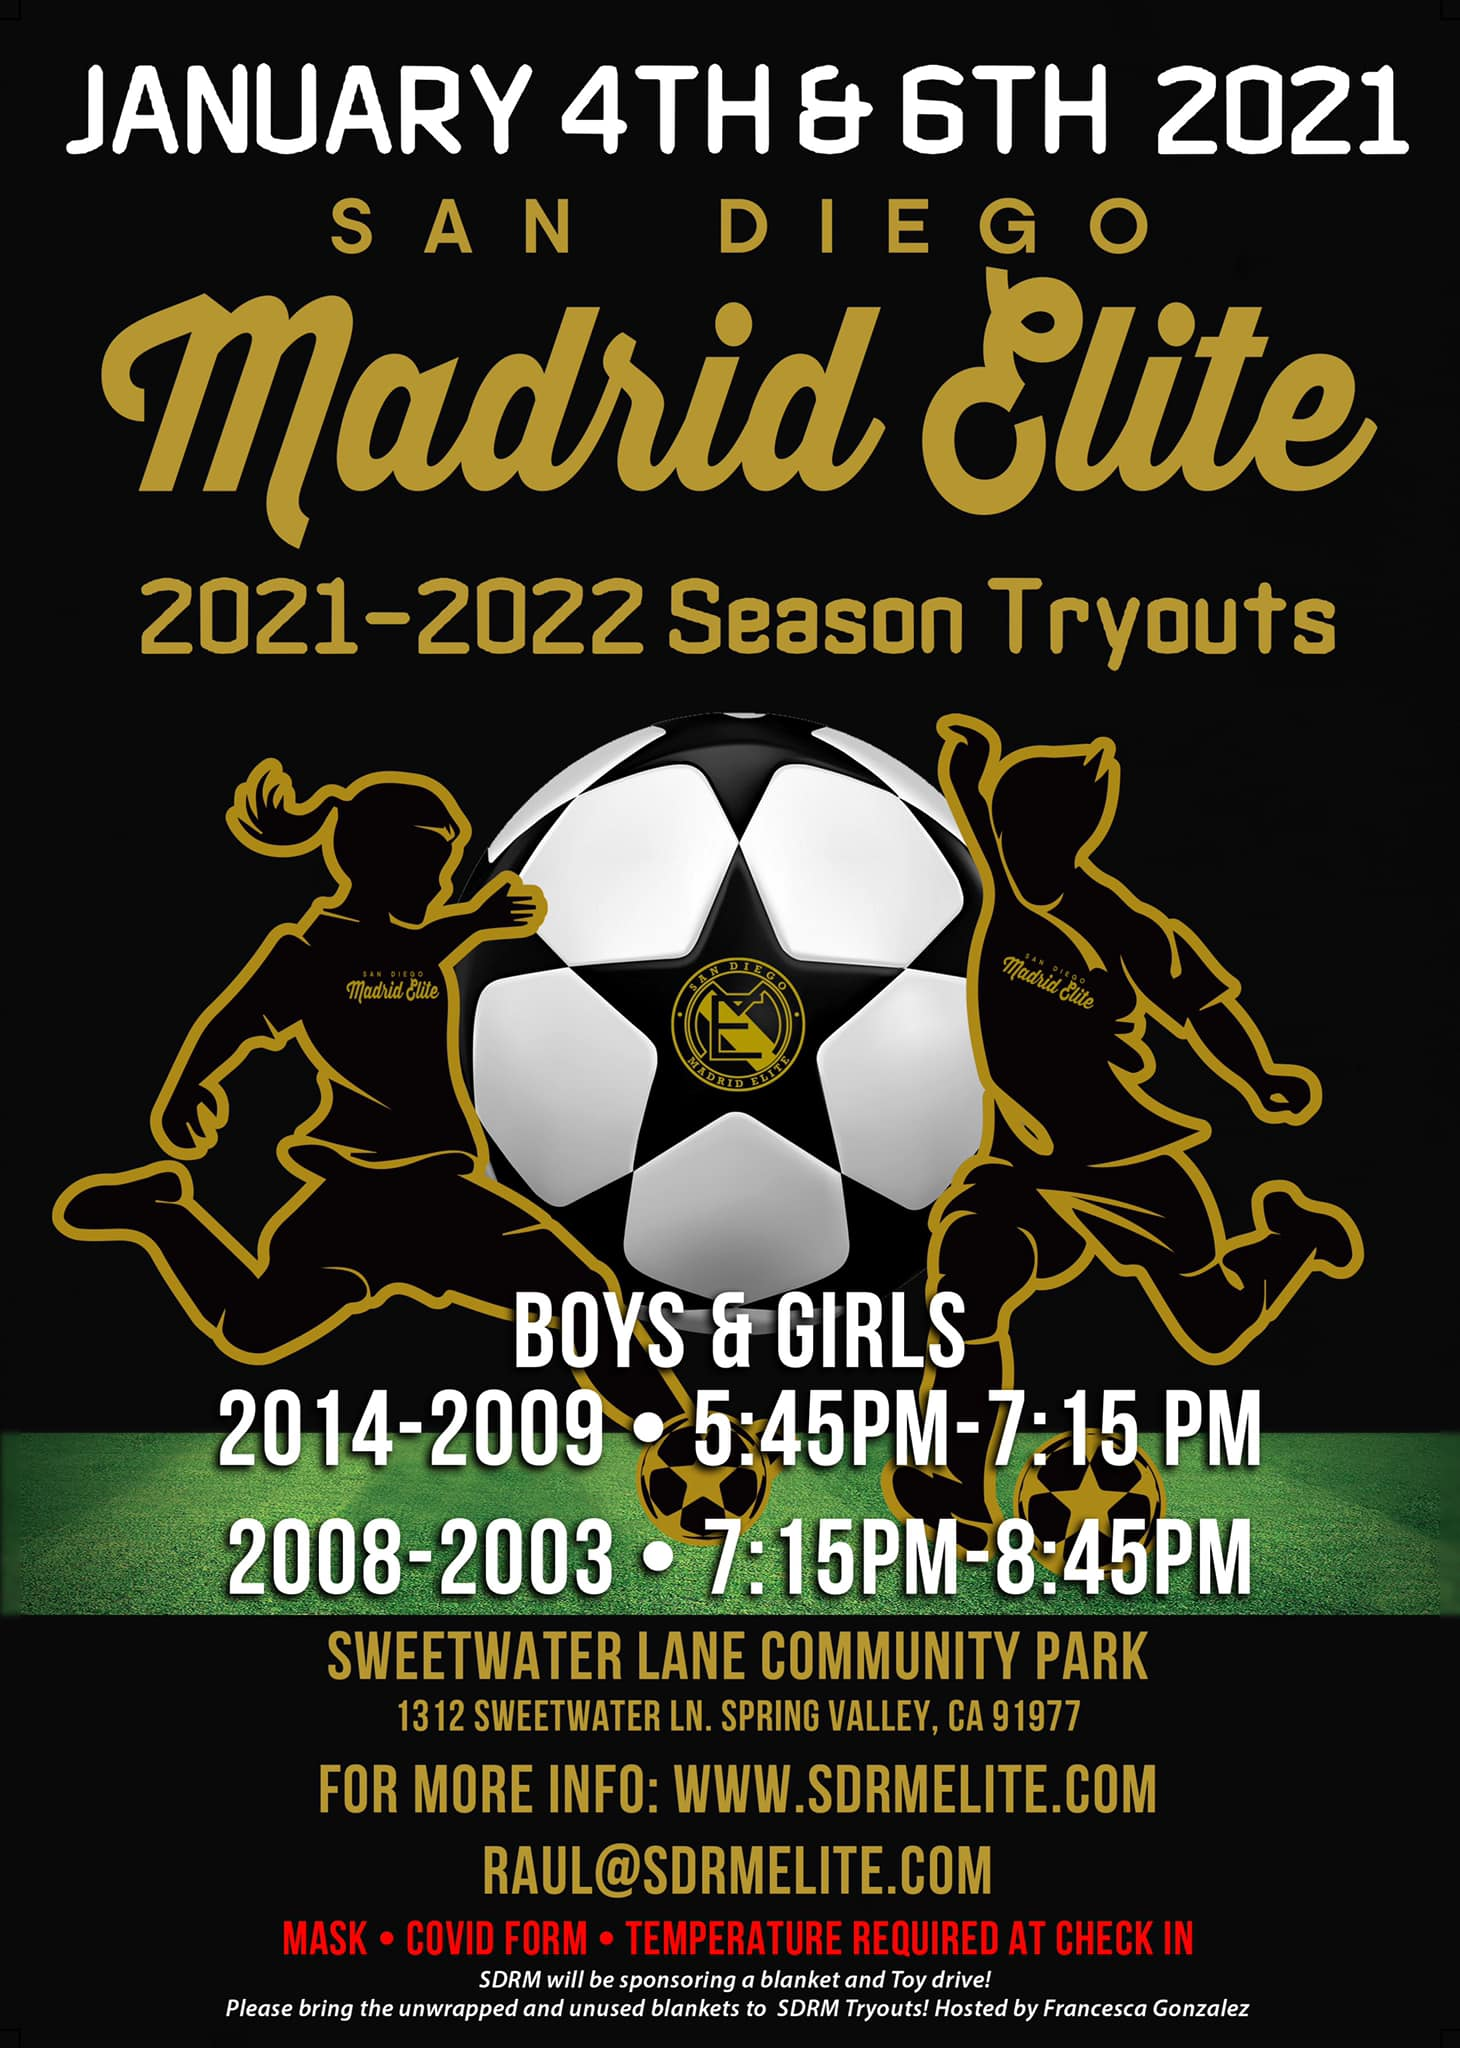 OPEN TRYOUTS